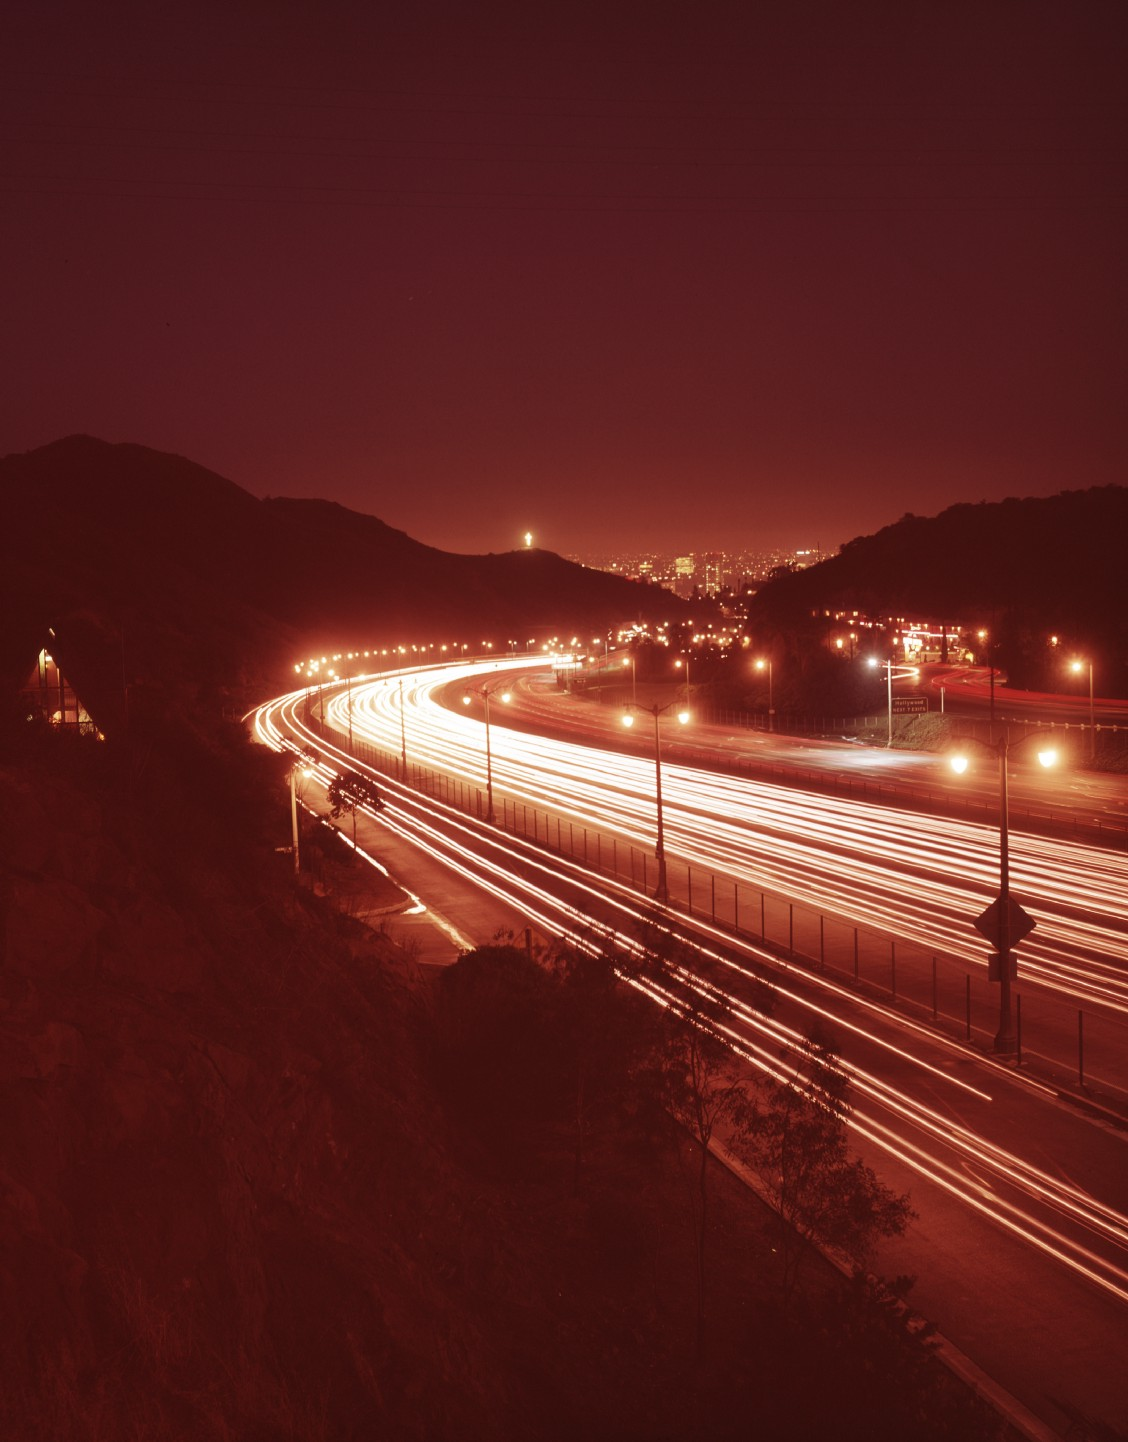 During a 1994 blackout, L A  residents called 911 when they saw the